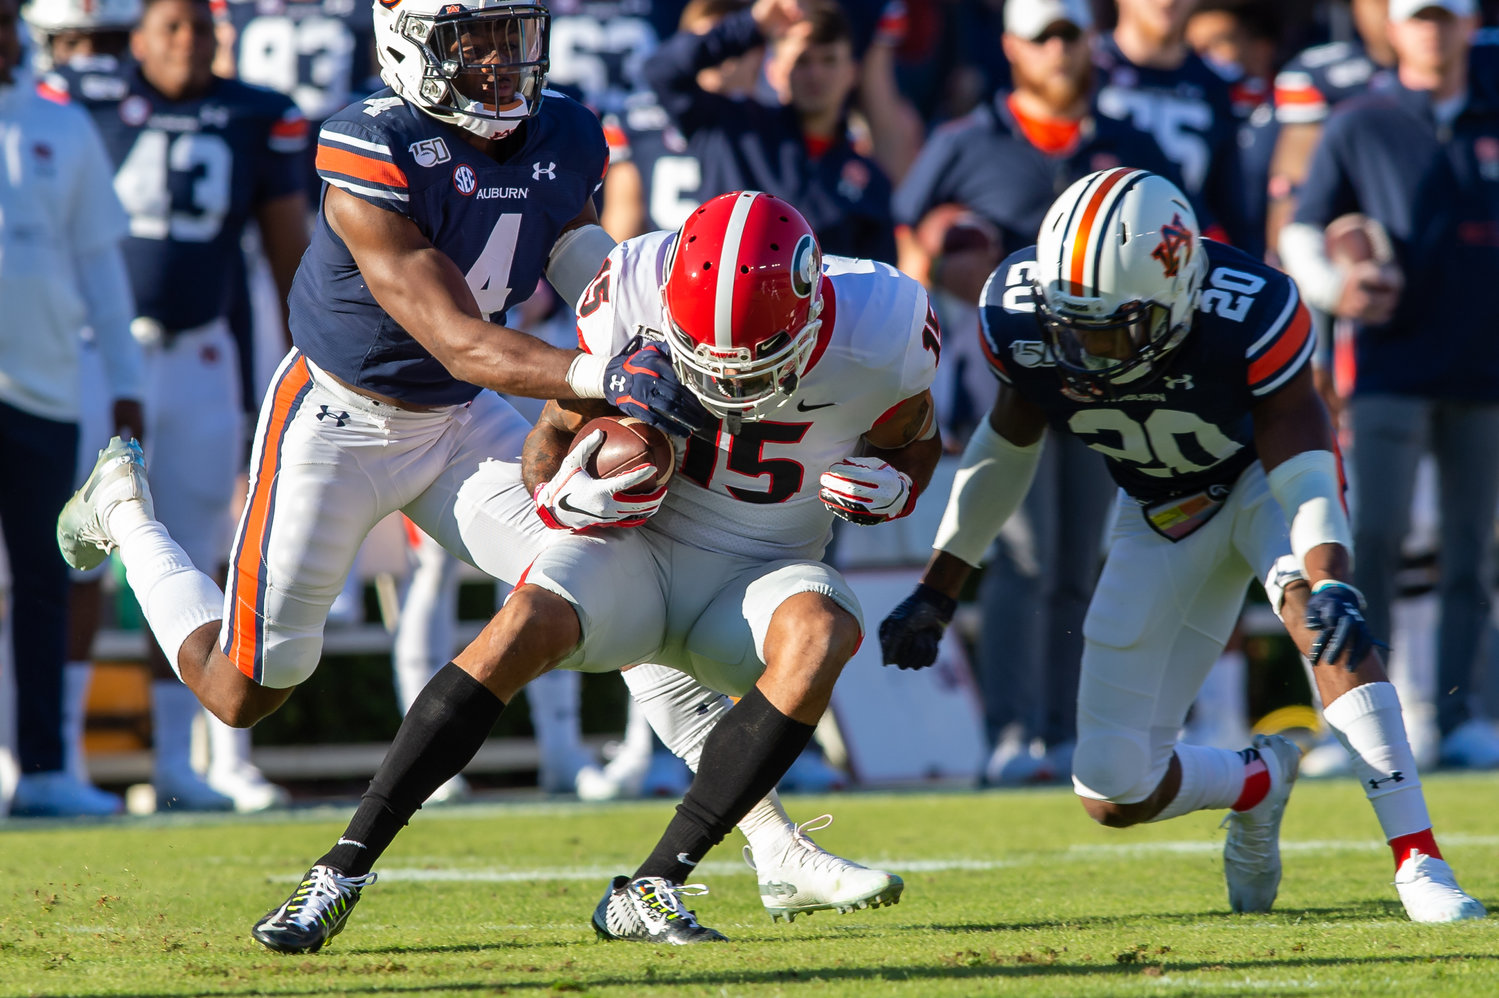 Auburn Tigers defensive backs Noah Igbinoghene (4) and  Jeremiah Dinson (20) tackle Georgia Bulldogs wide receiver Lawrence Cager (15) during the first half of Saturday's game, at Jordan-Hare Stadium in Auburn,, AL. Daily Mountain Eagle -  Jeff Johnsey